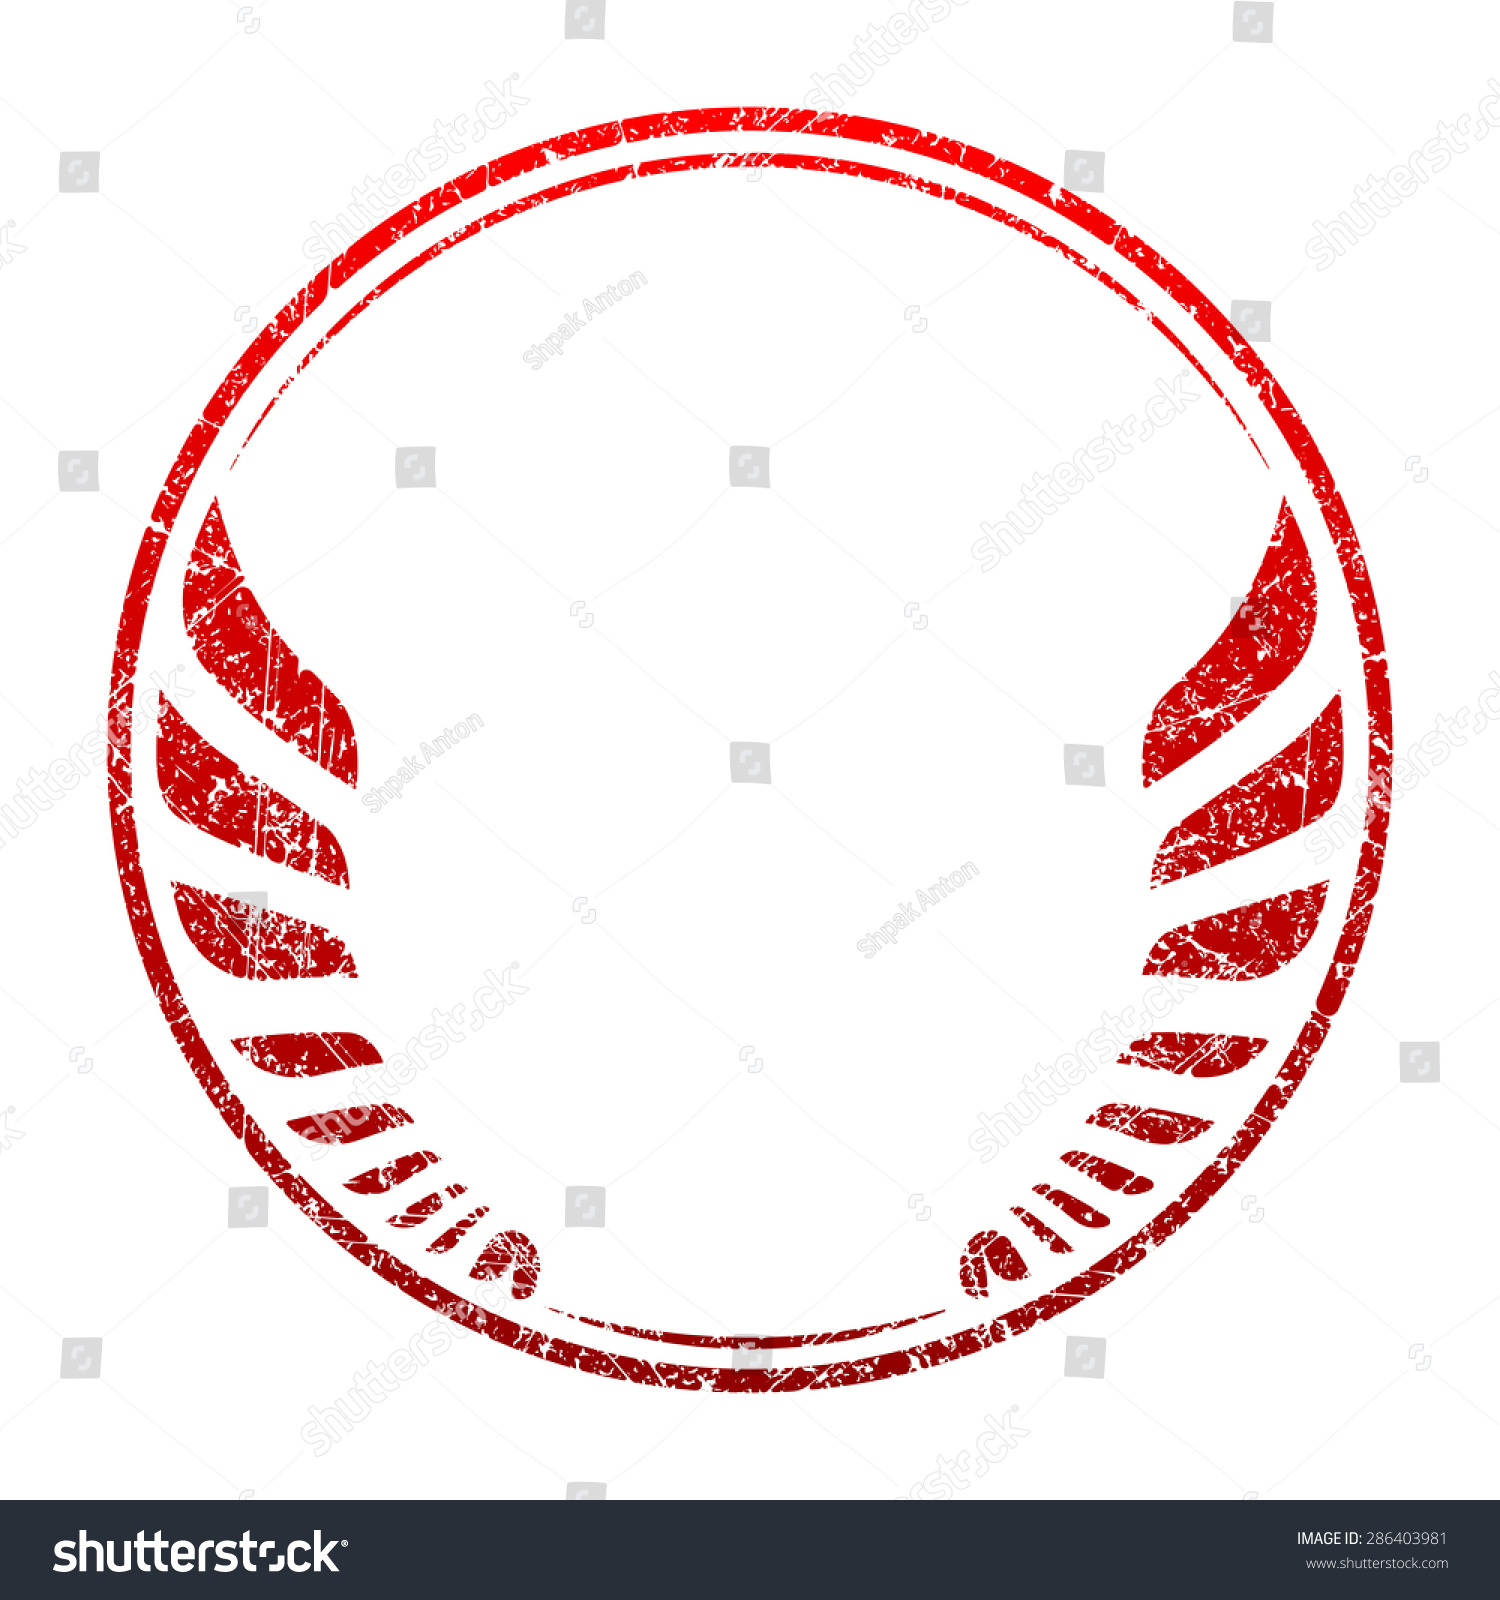 Red Grunge Rubber Stamp Template With Wings And An Empty Space For Your  Text, Logo